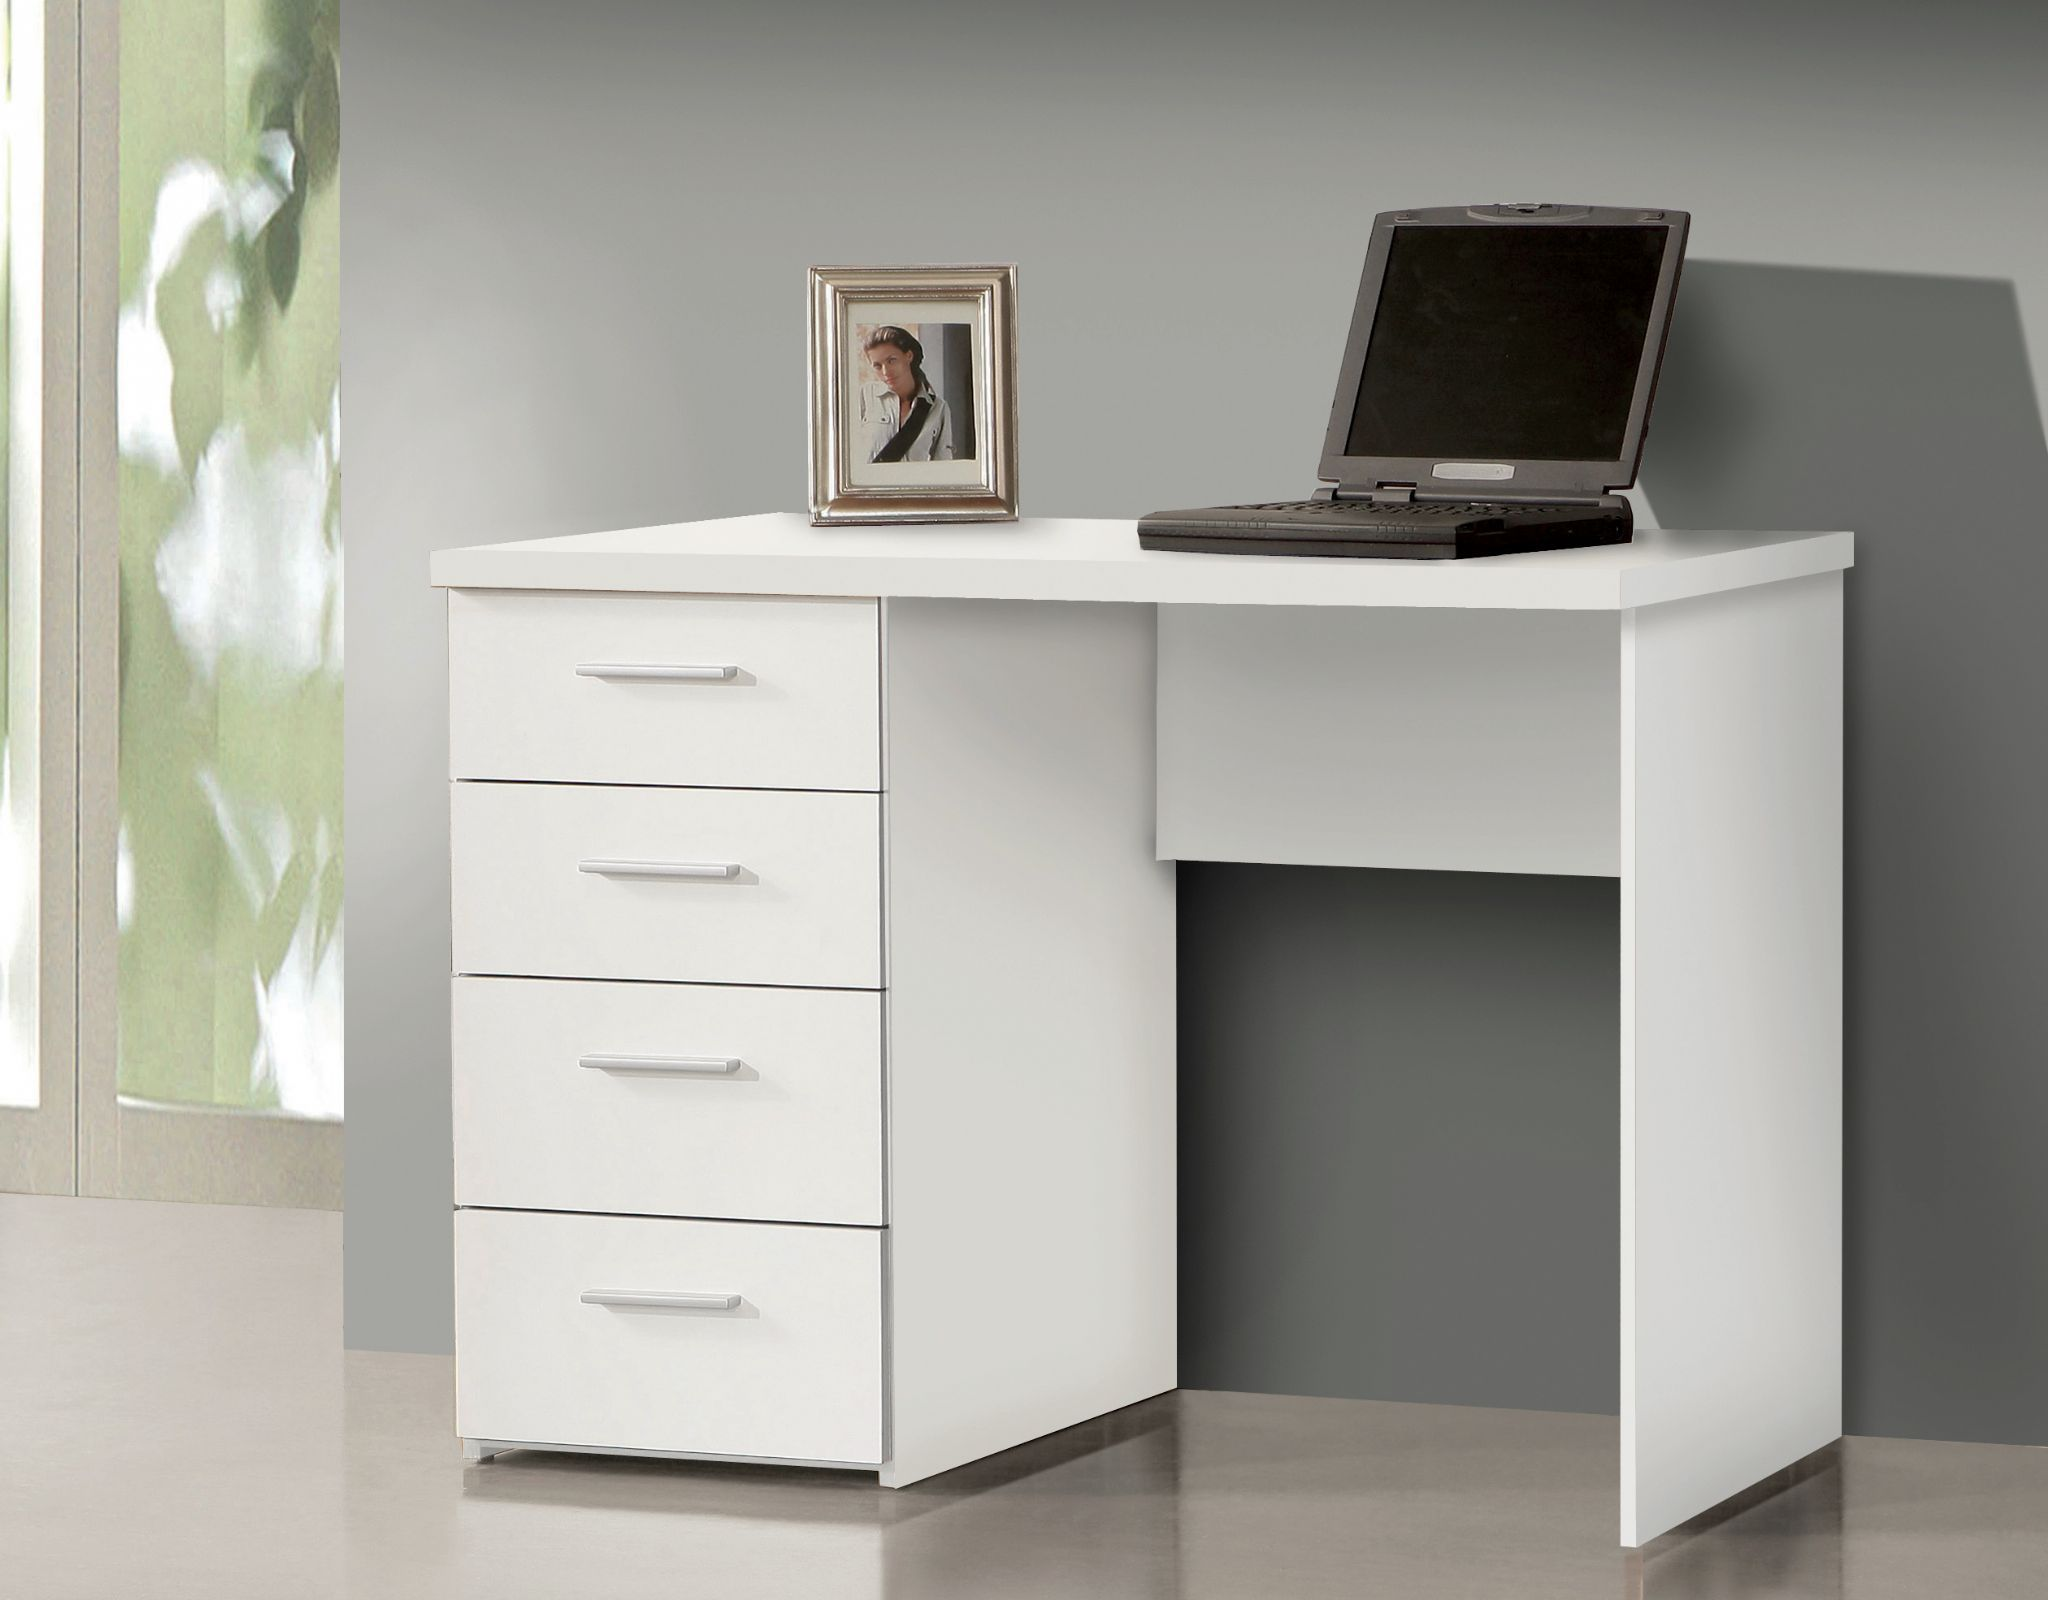 How To Effectively Add A Desk With Drawers Small White Desk